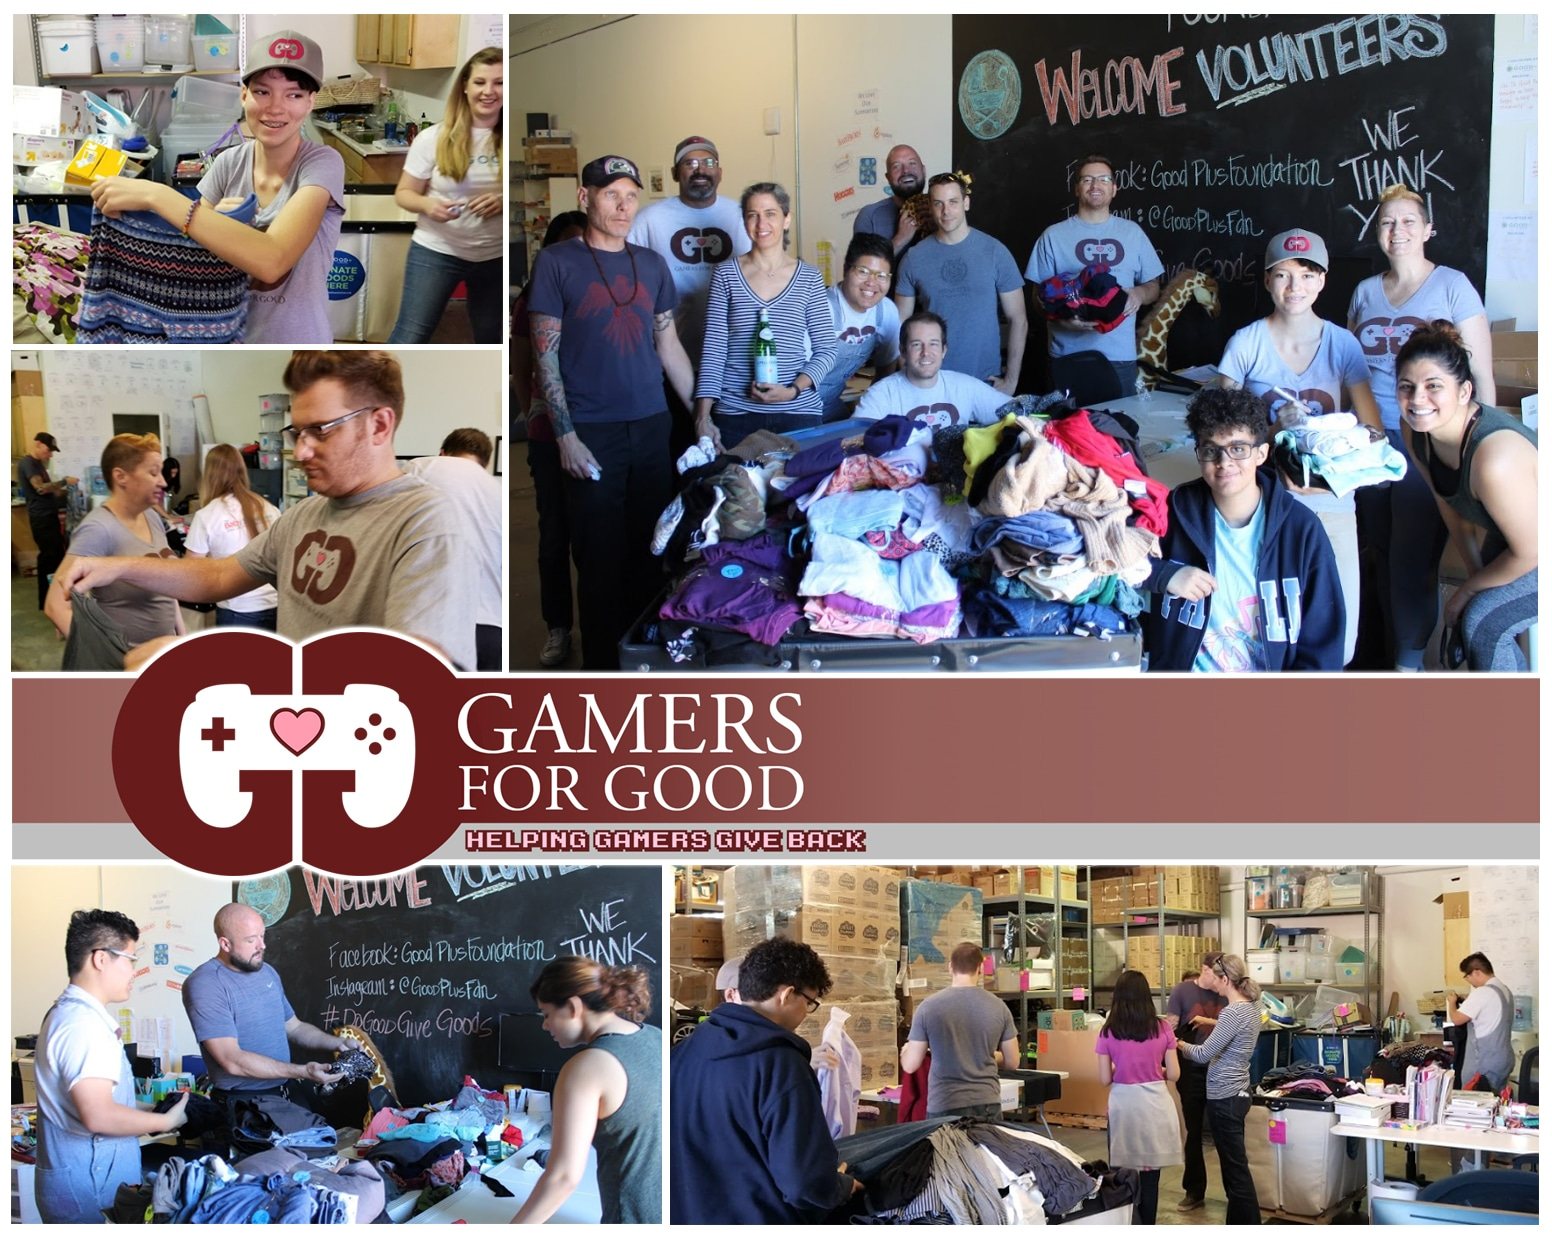 Gamers for Good volunteer to help cloth LA's needy Families with Good+ Foundation